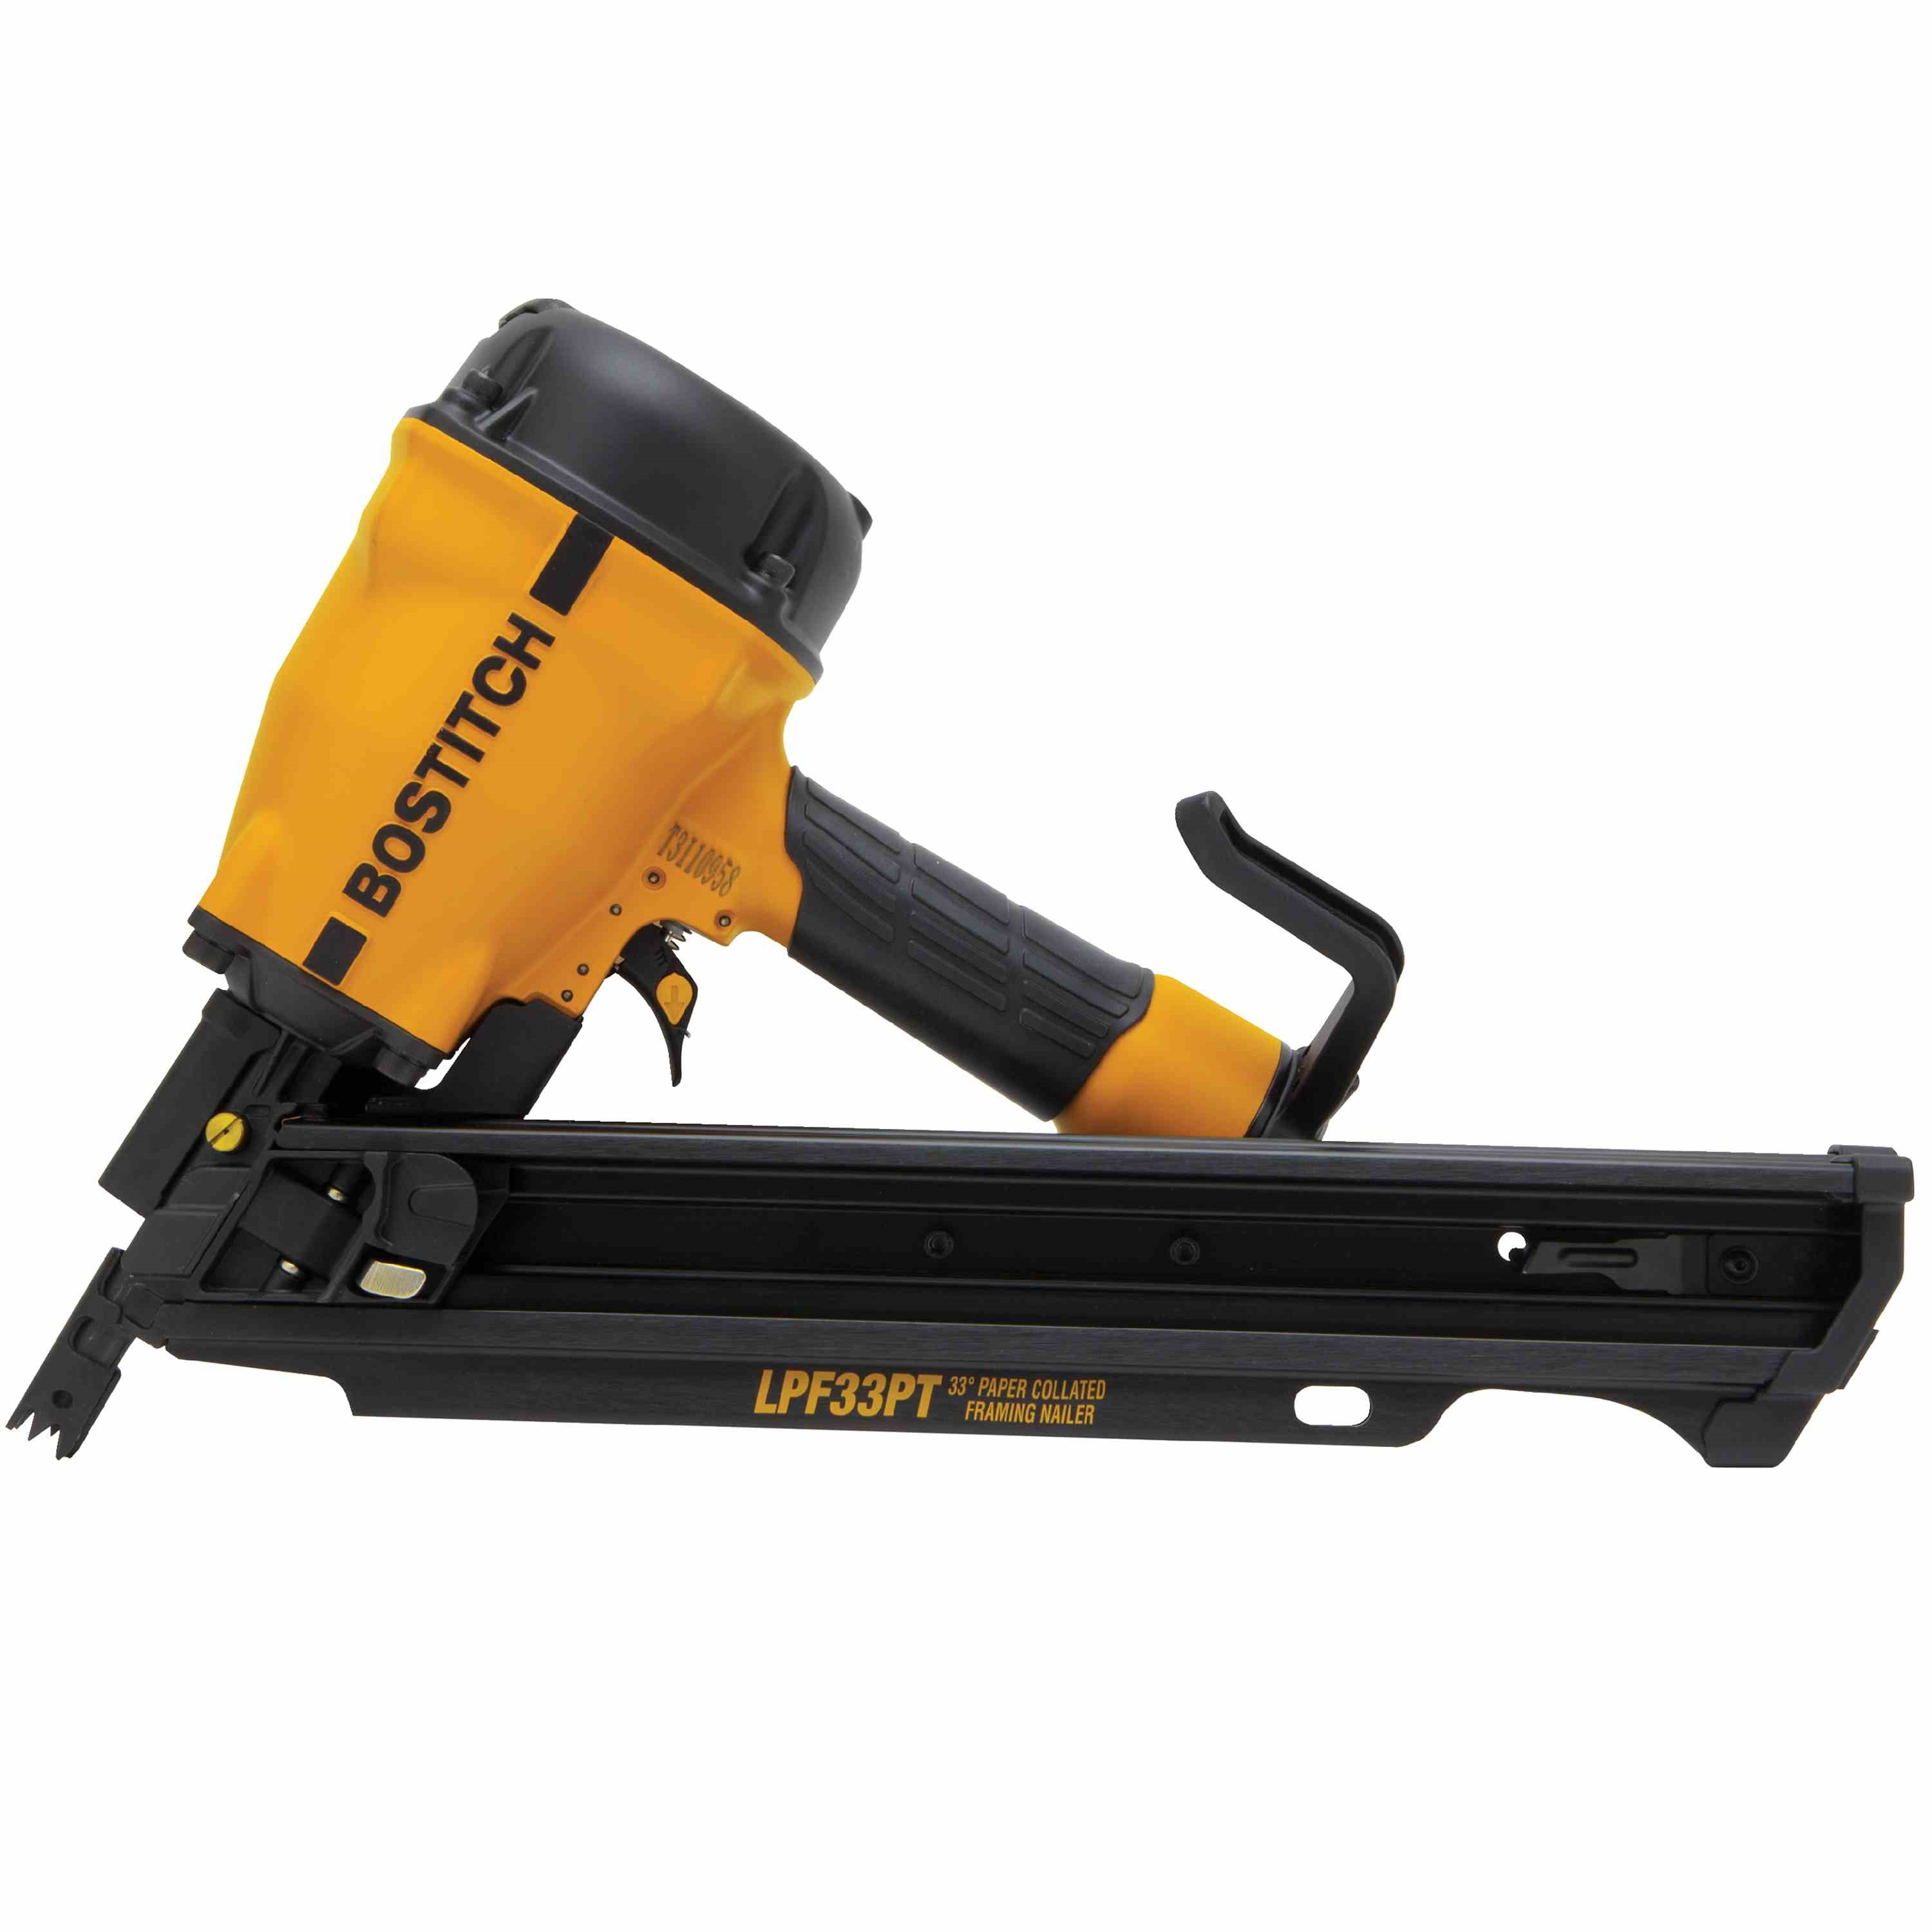 bostitch low profile paper tape framing nailer lpf33pt